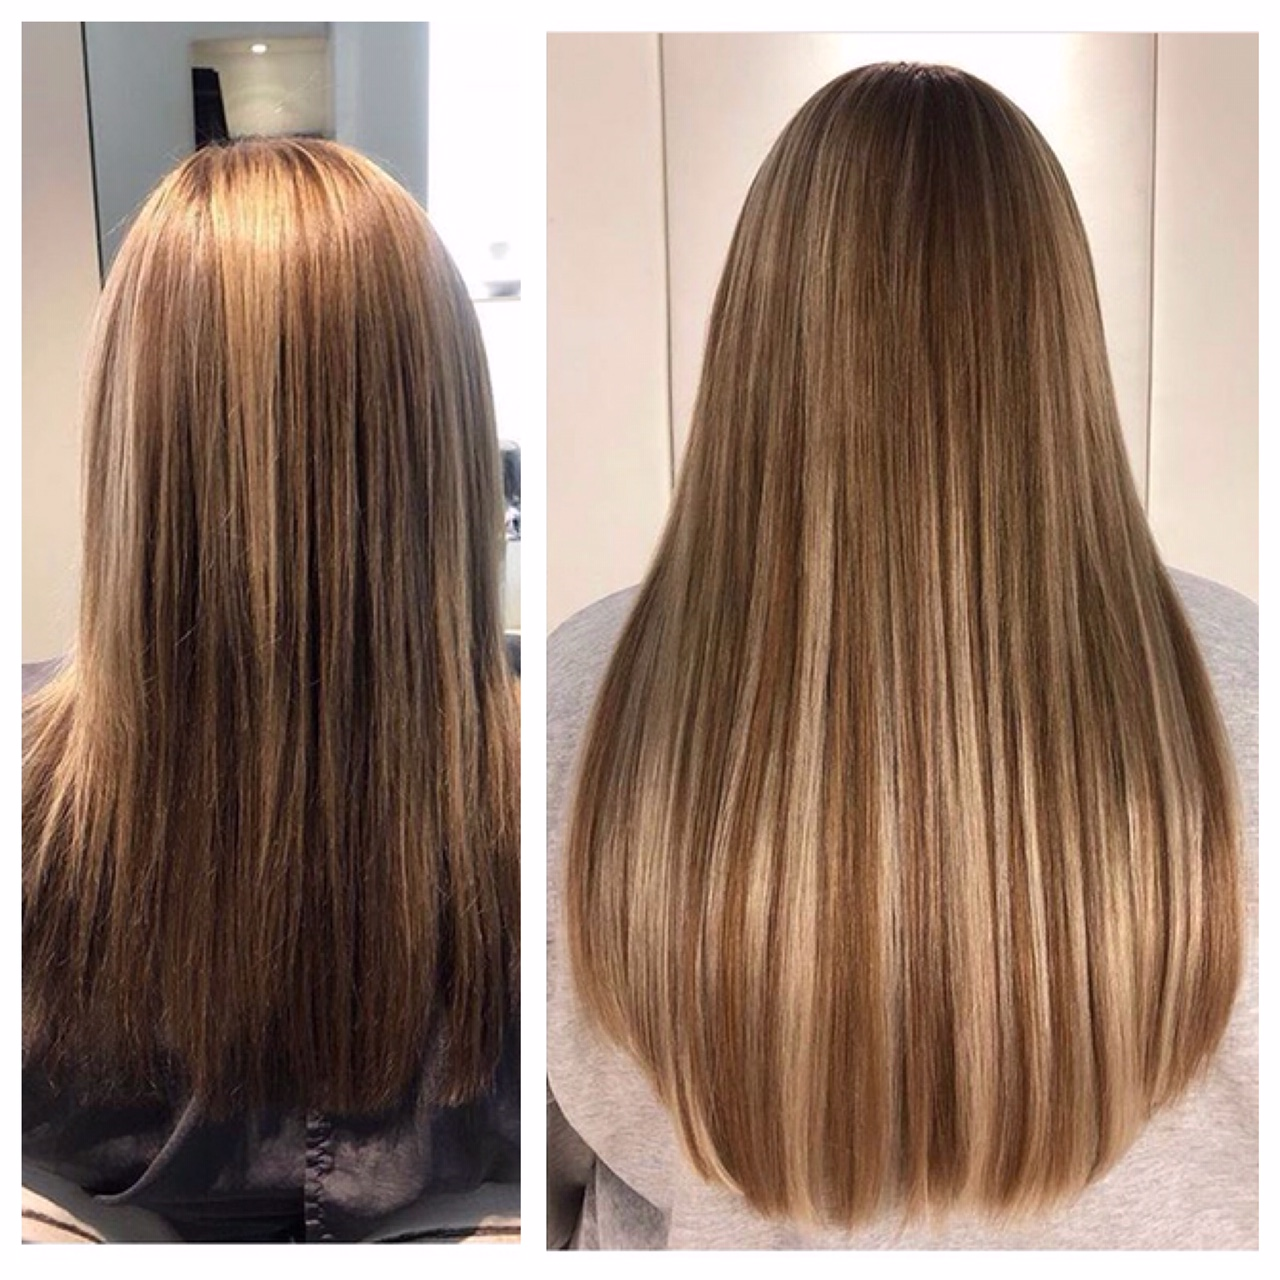 ad8ad4daad6d medium length hair over the shoulders has been extended by using Easilocks  system done at the